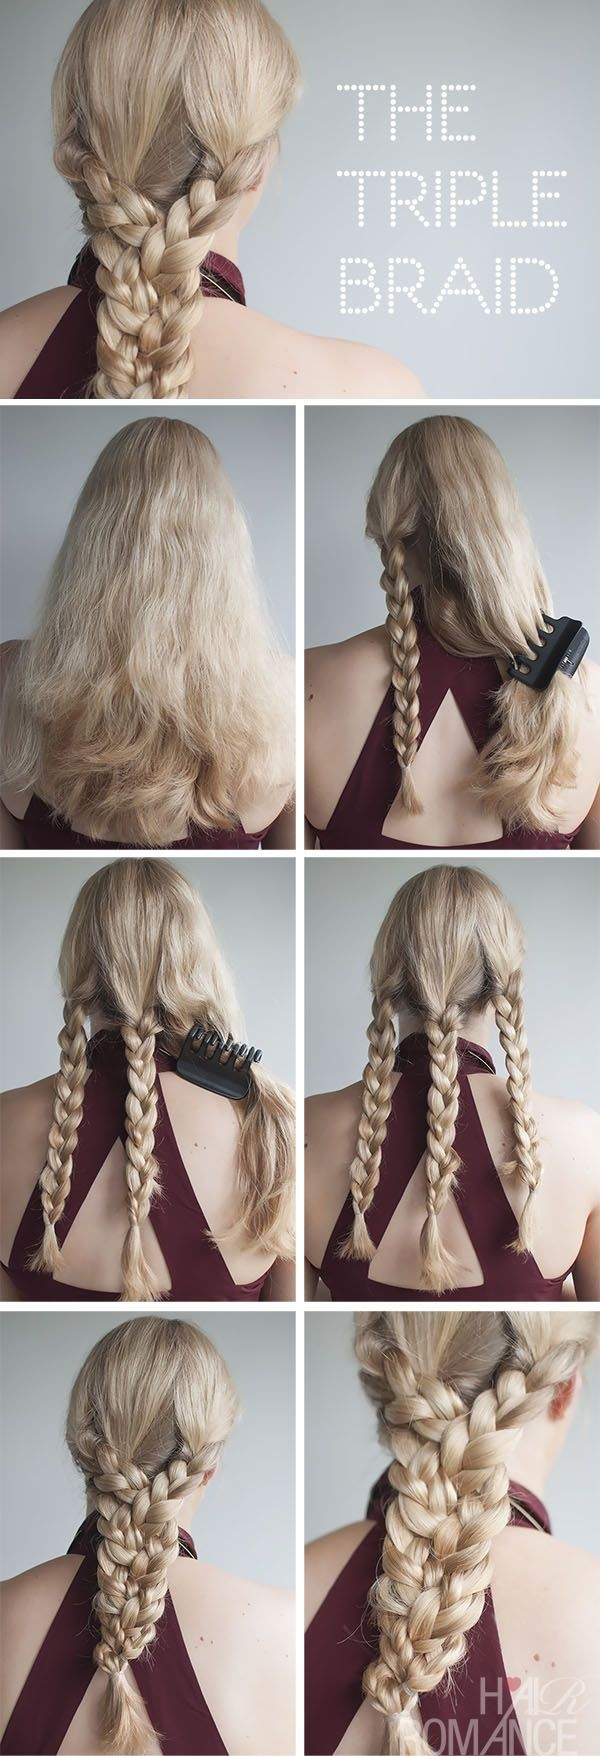 Triple Braided Hairstyle Tutorial For Summer